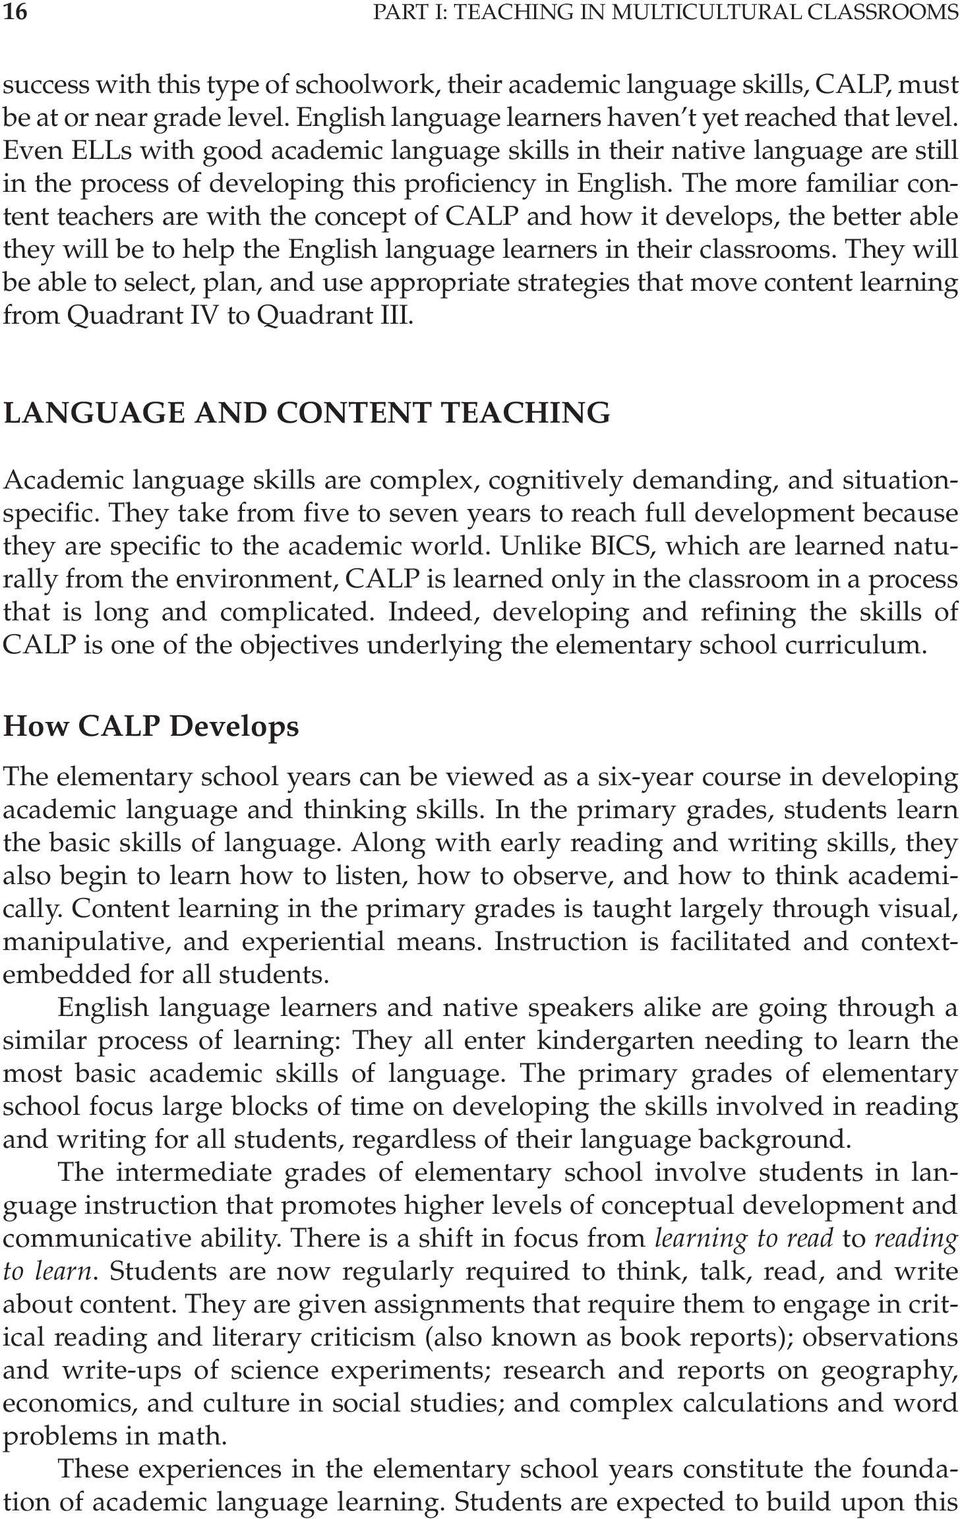 The more familiar content teachers are with the concept of CALP and how it develops, the better able they will be to help the English language learners in their classrooms.